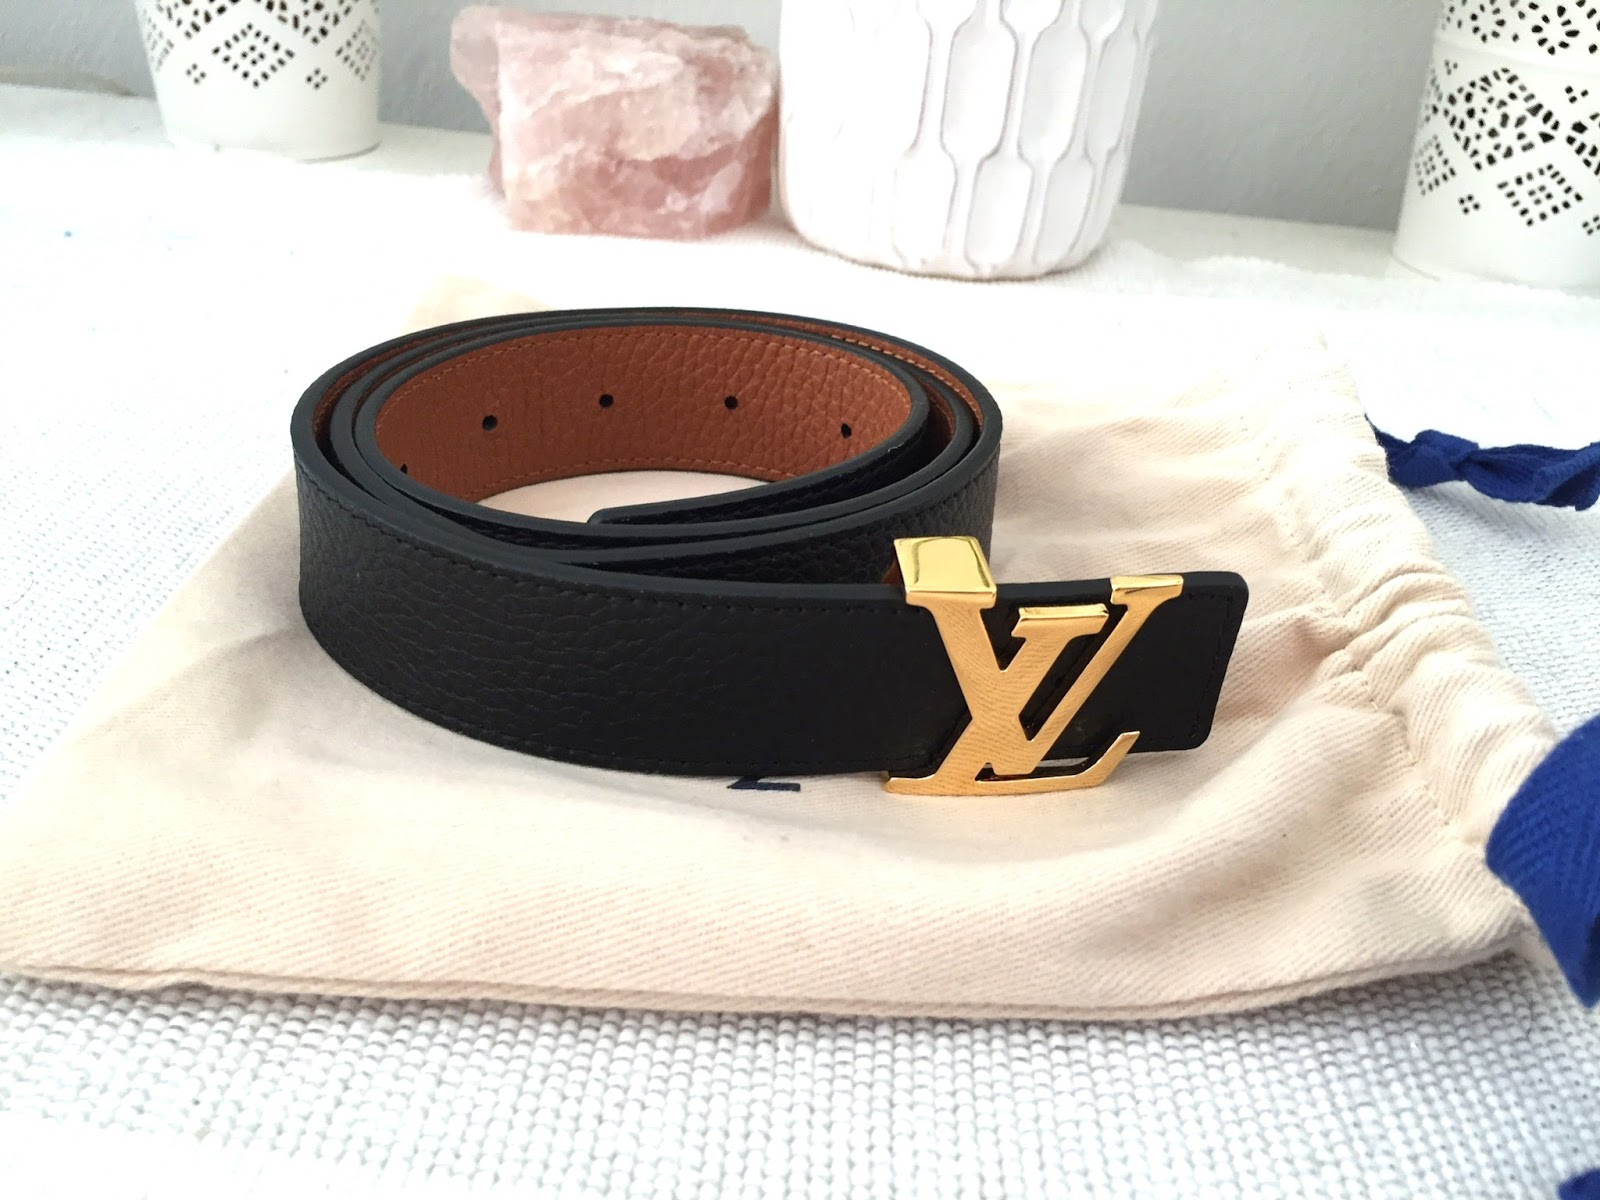 416782f0b8e7 ... at their belts and noticed this classic black leather belt with the LV  monogram buckle. I tried it on and fell in love with it s classy